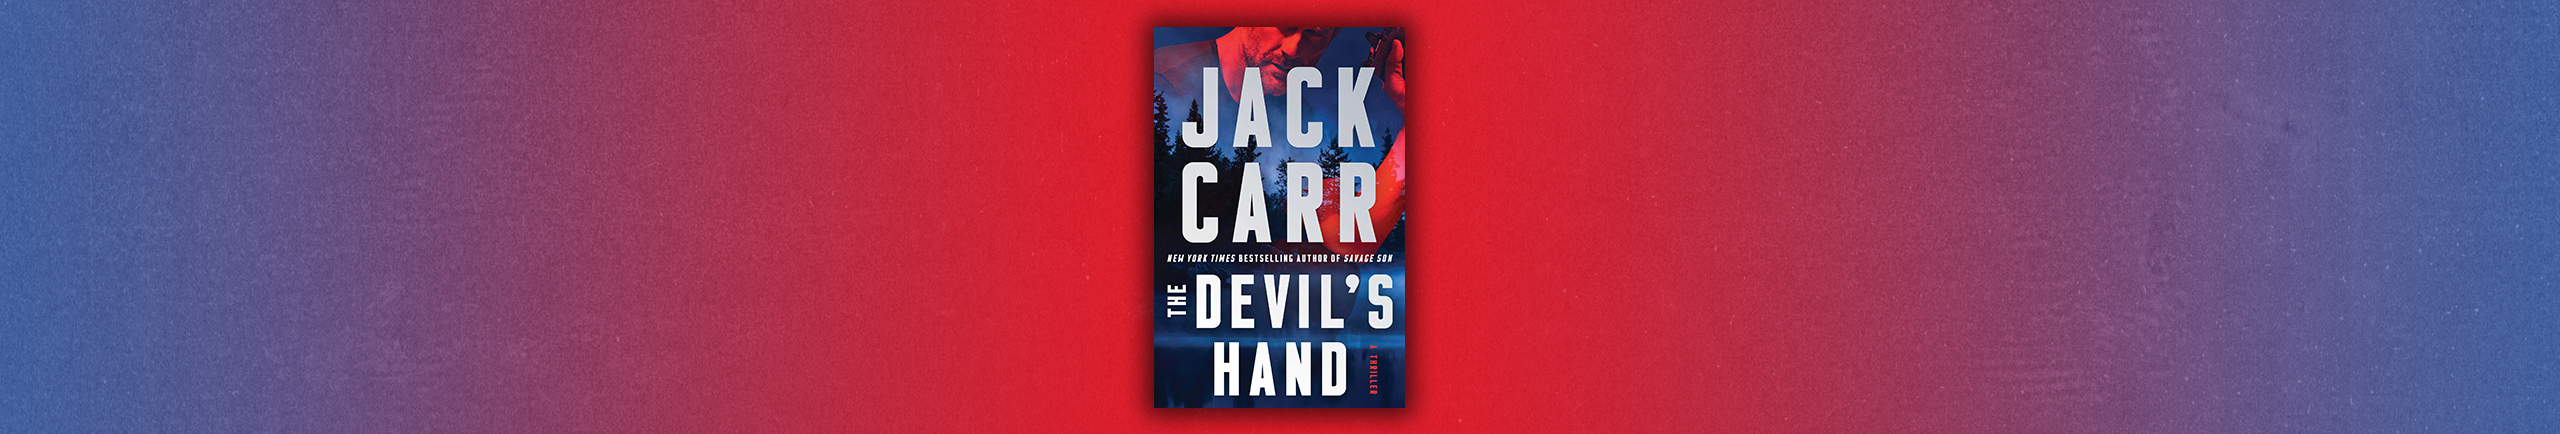 Devil's Hand by Jack Carr